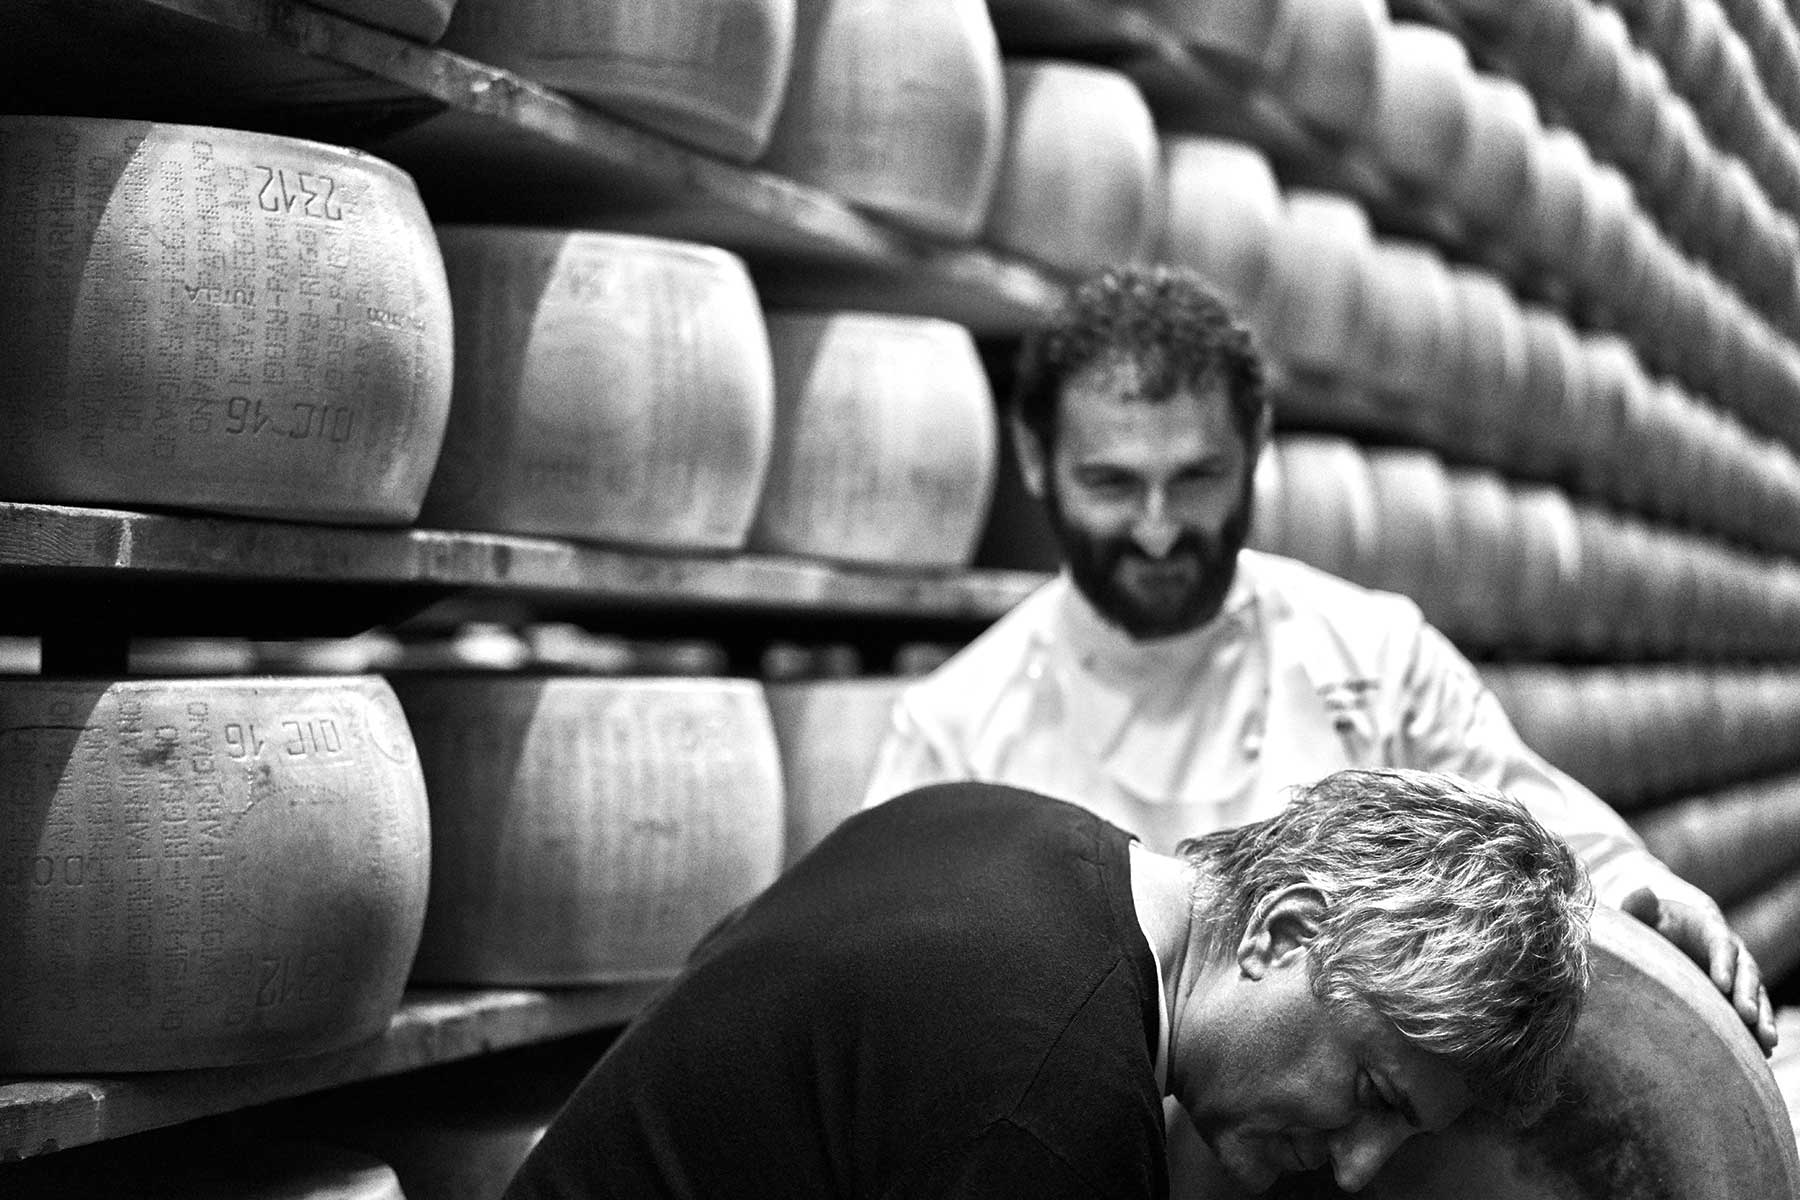 Rocco Princi inspects a wheel of Parmigiano Reggiano cheese